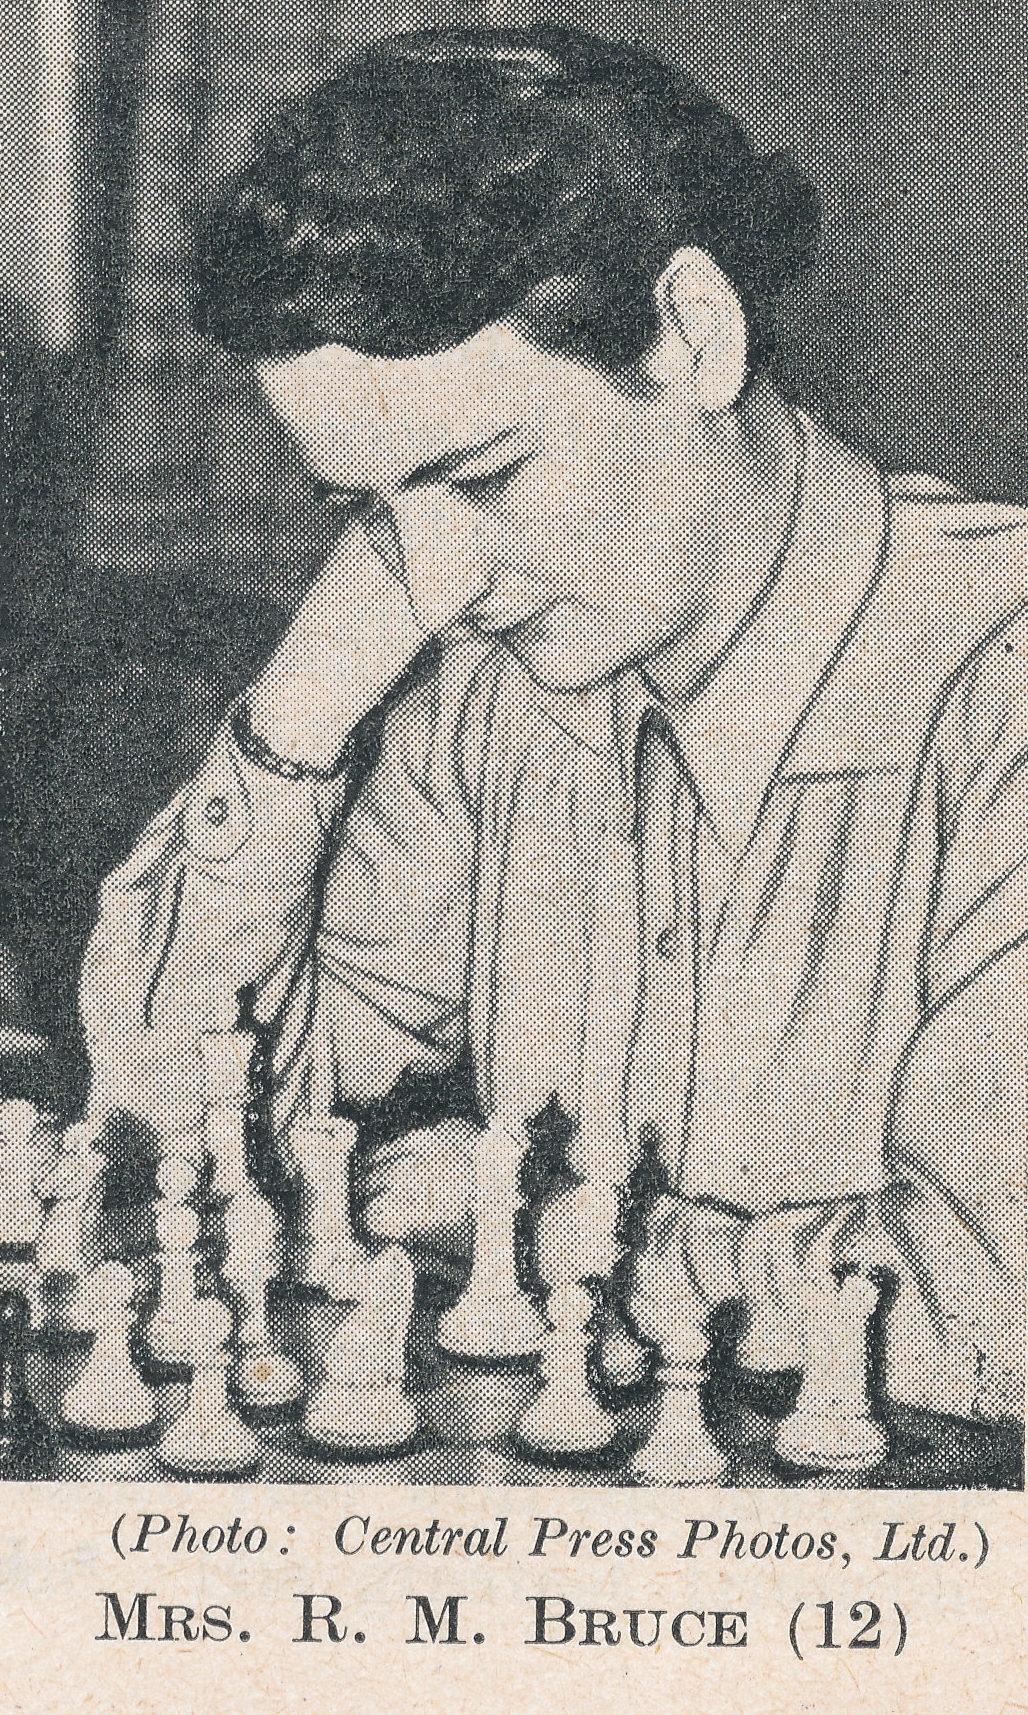 WIM Rowena Bruce (15-v-1919 24-ix-1999). Source : The Anglo-Soviet Radio Chess Match.